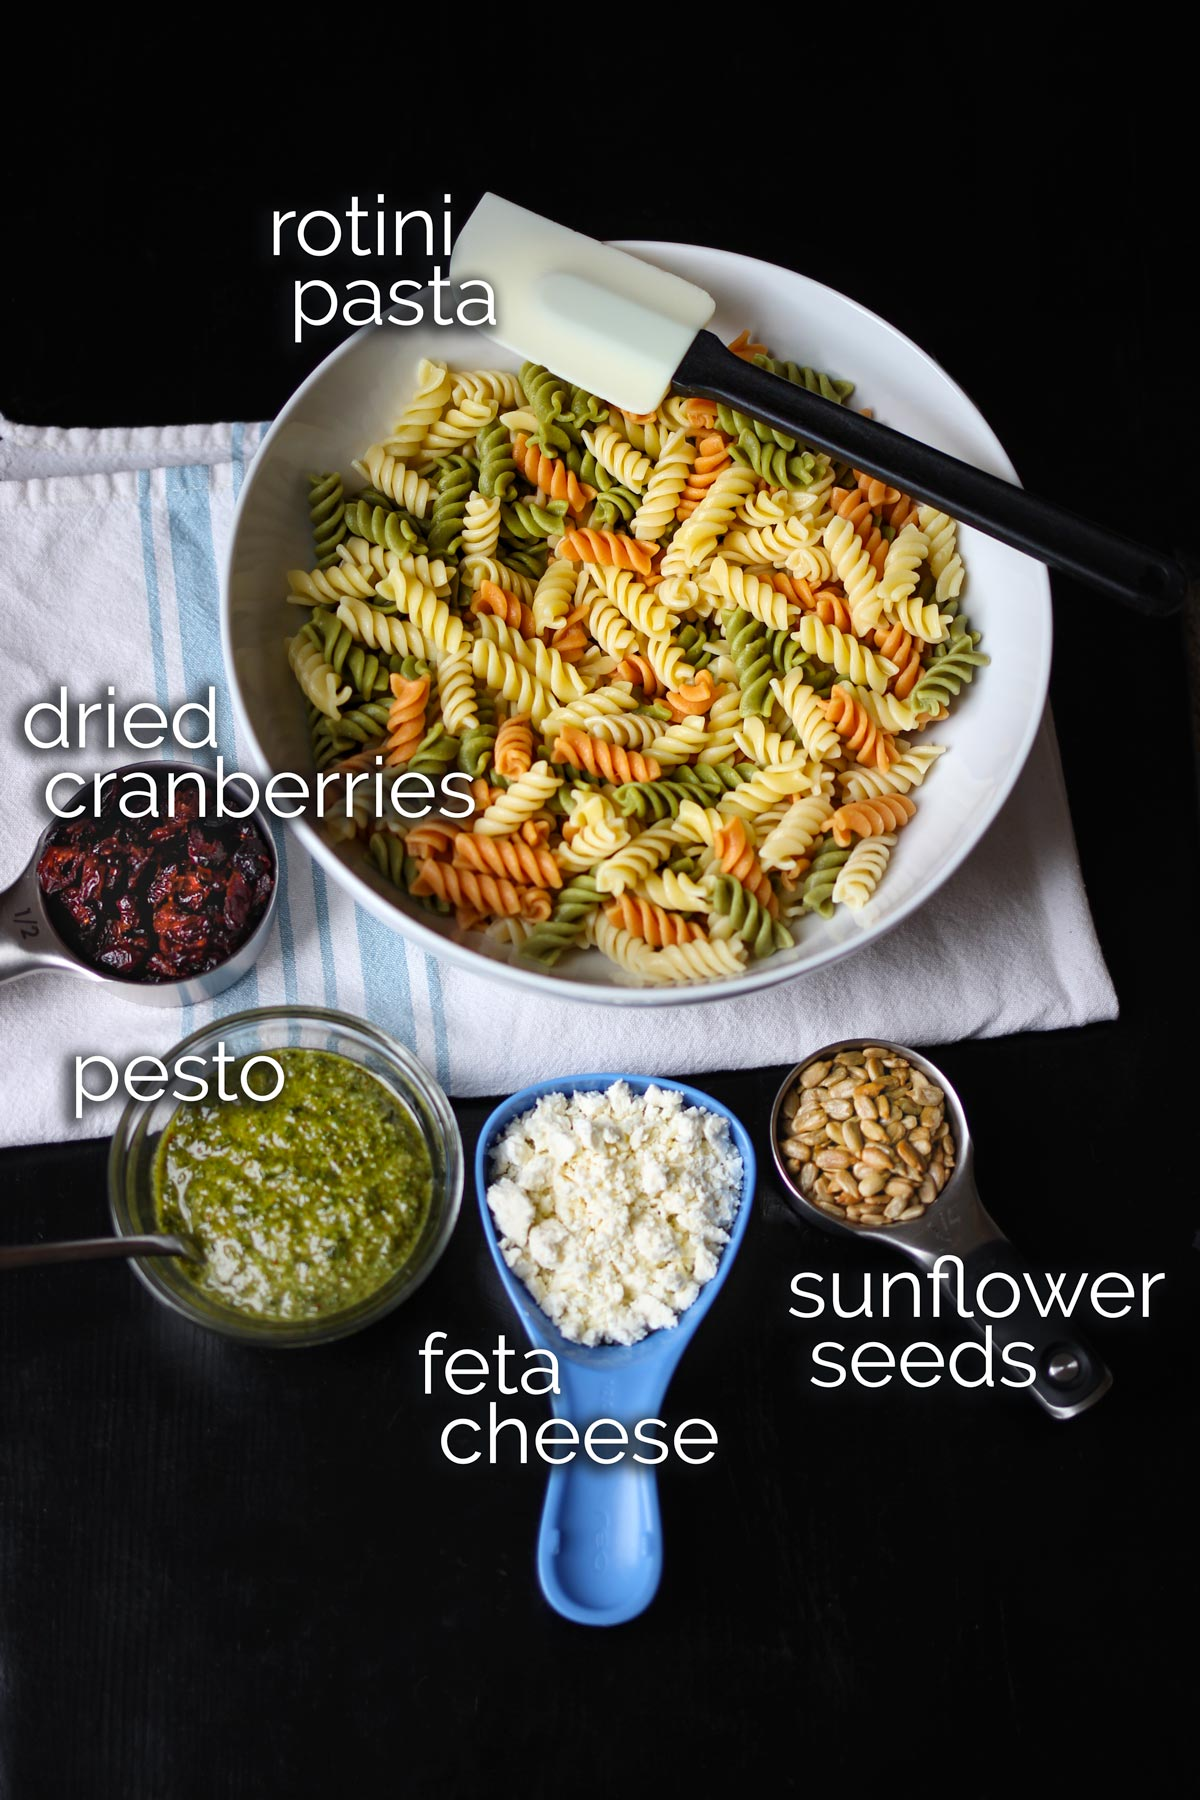 ingredients for pesto pasta salad laid out on black table top.